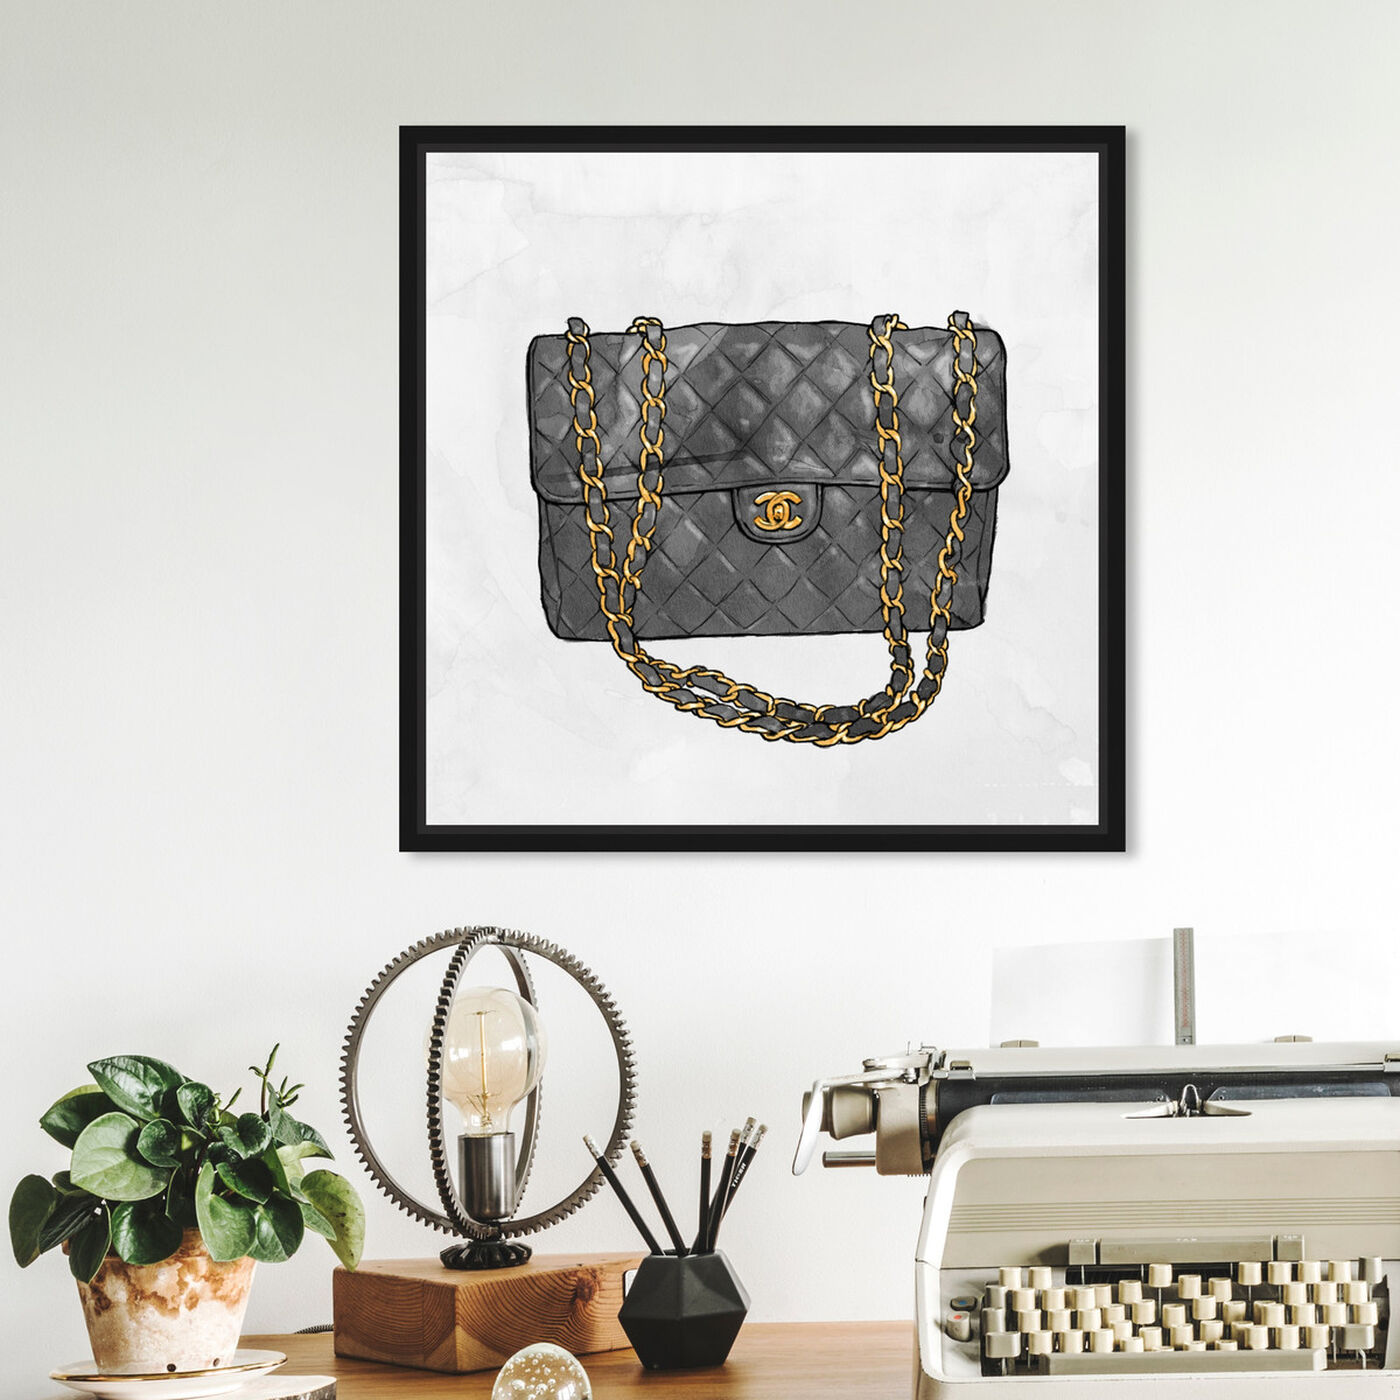 Hanging view of Everything But My bag featuring fashion and glam and handbags art.